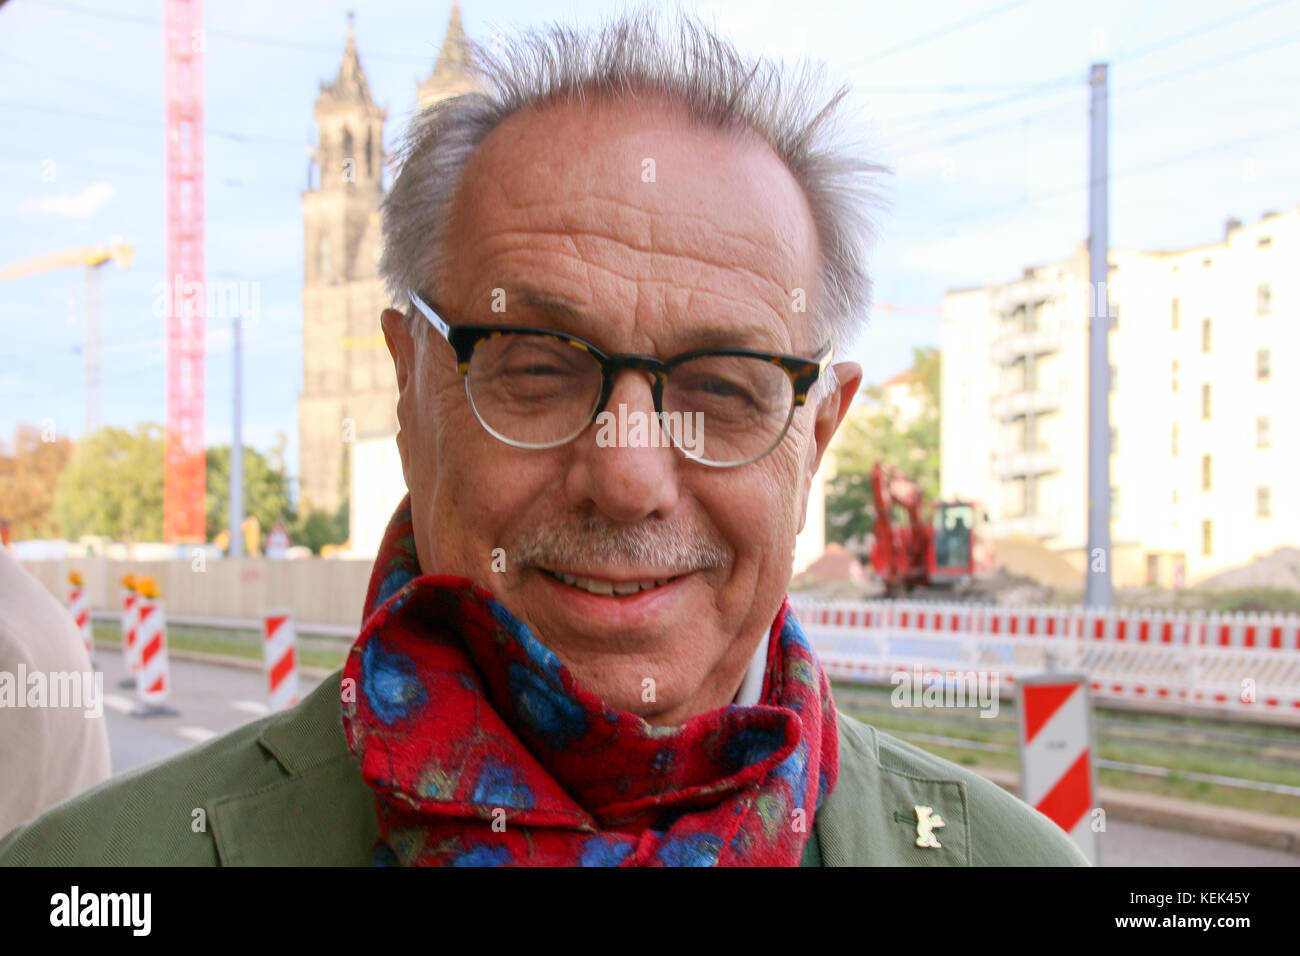 MAGDEBURG, GERMANY - September 15, 2017: The head of the Berlinale Film Festival, Dieter Kosslick, He criticized US film producer Harvey Weinstein. Stock Photo